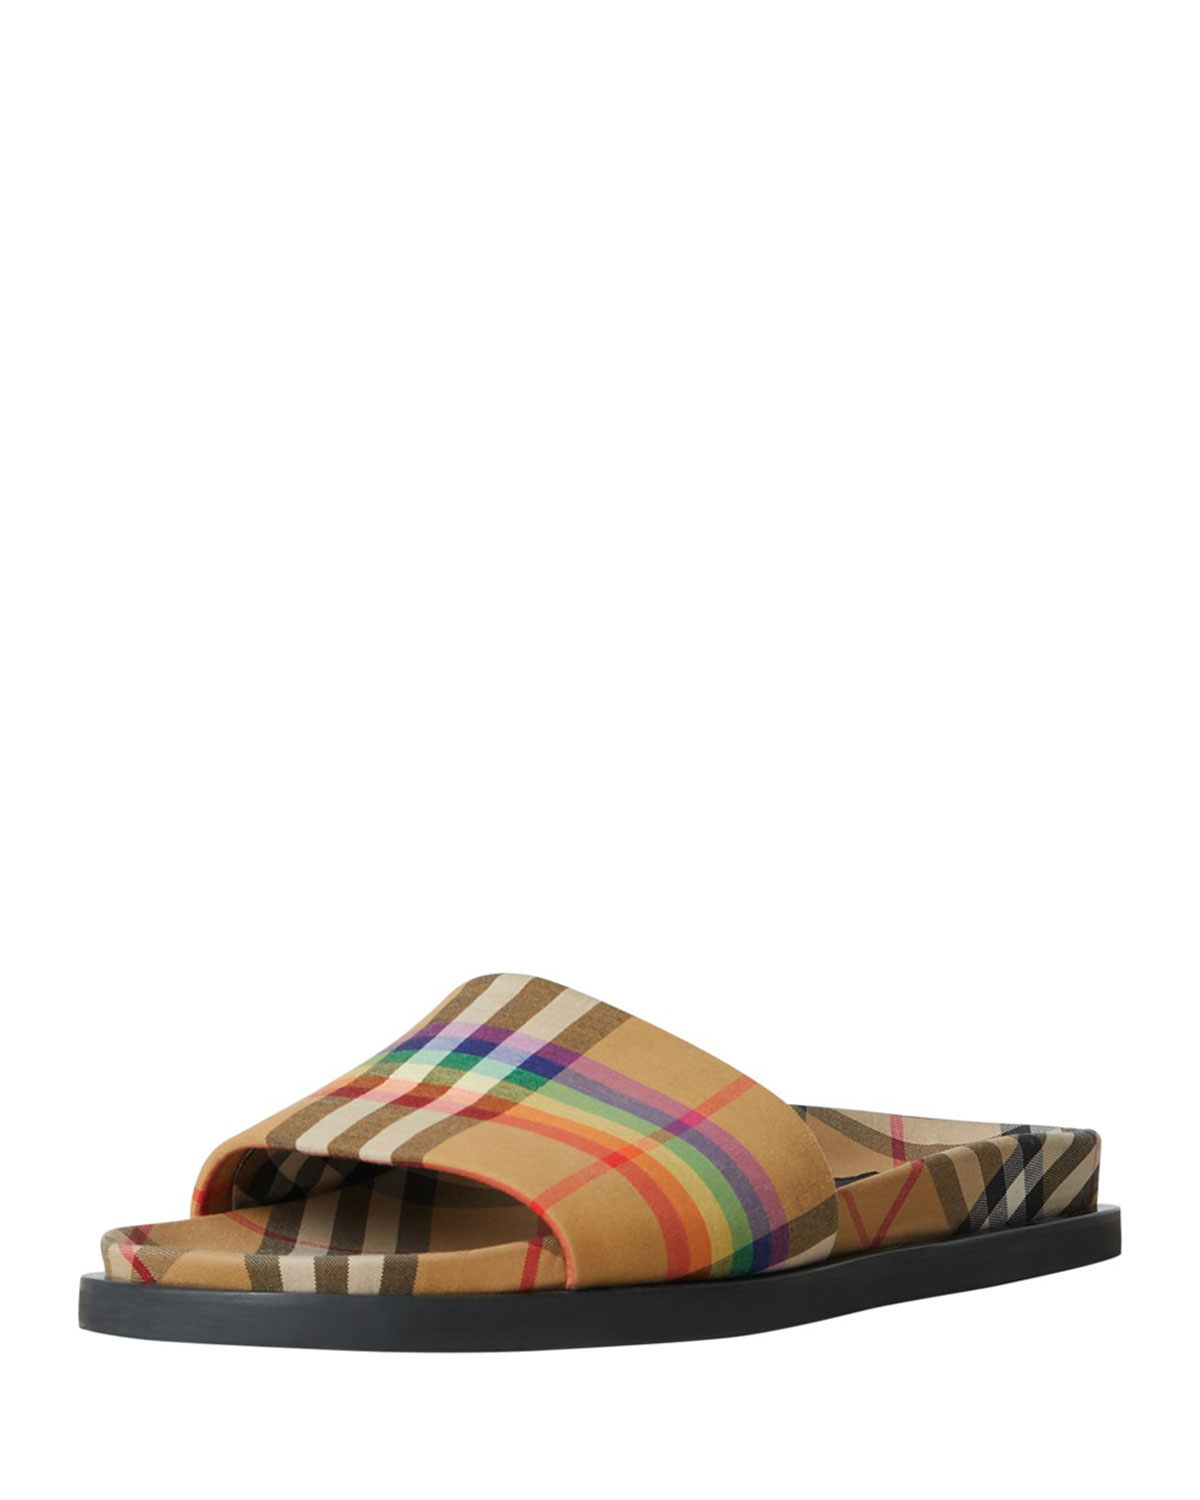 45c62680ec75 Burberry Ashmore Low-Top Rainbow Check Slide Sandal